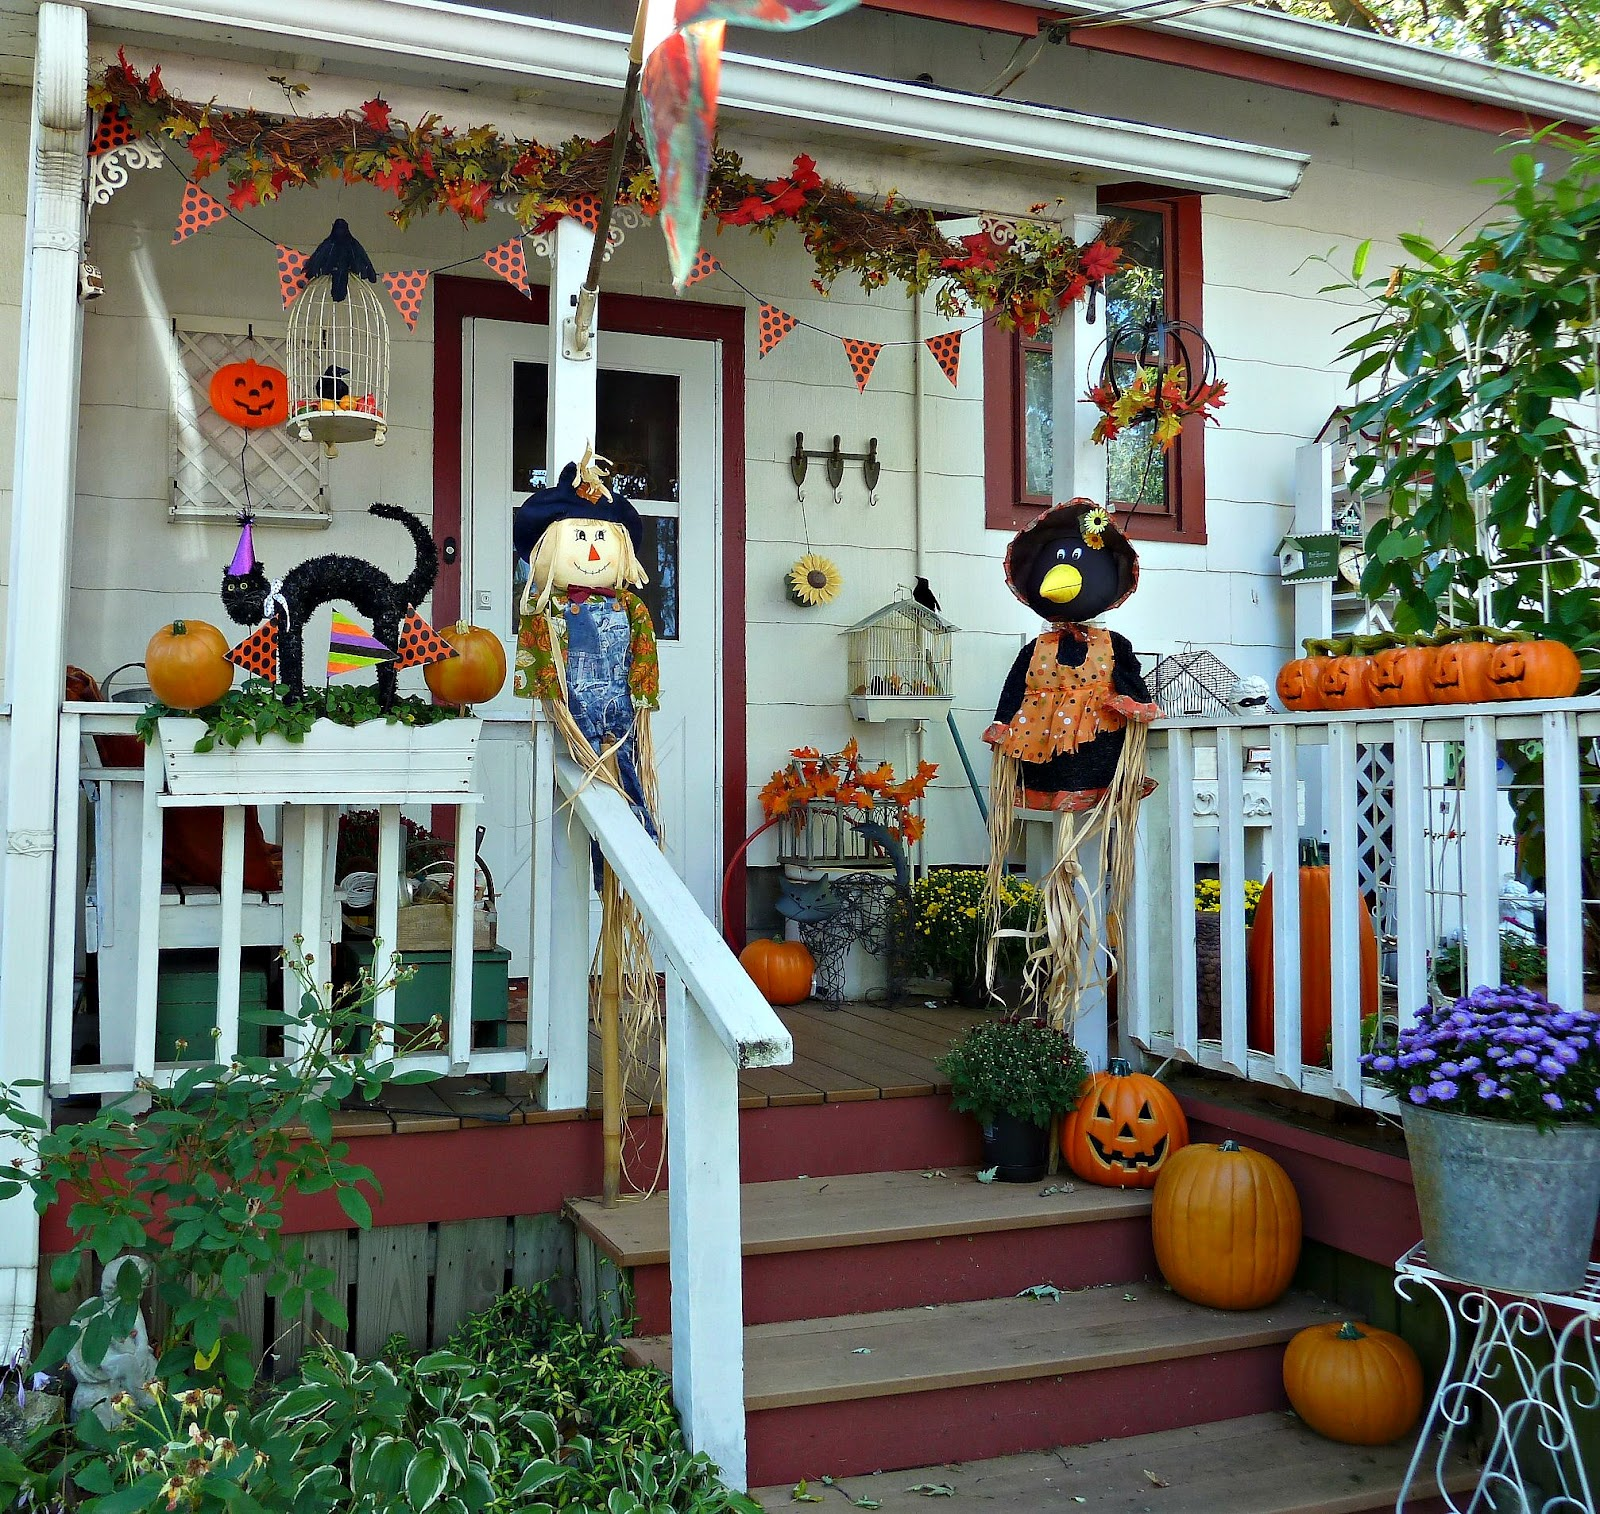 Decorated Halloween House: Old Glory Cottage: Halloween/Fall Decorations